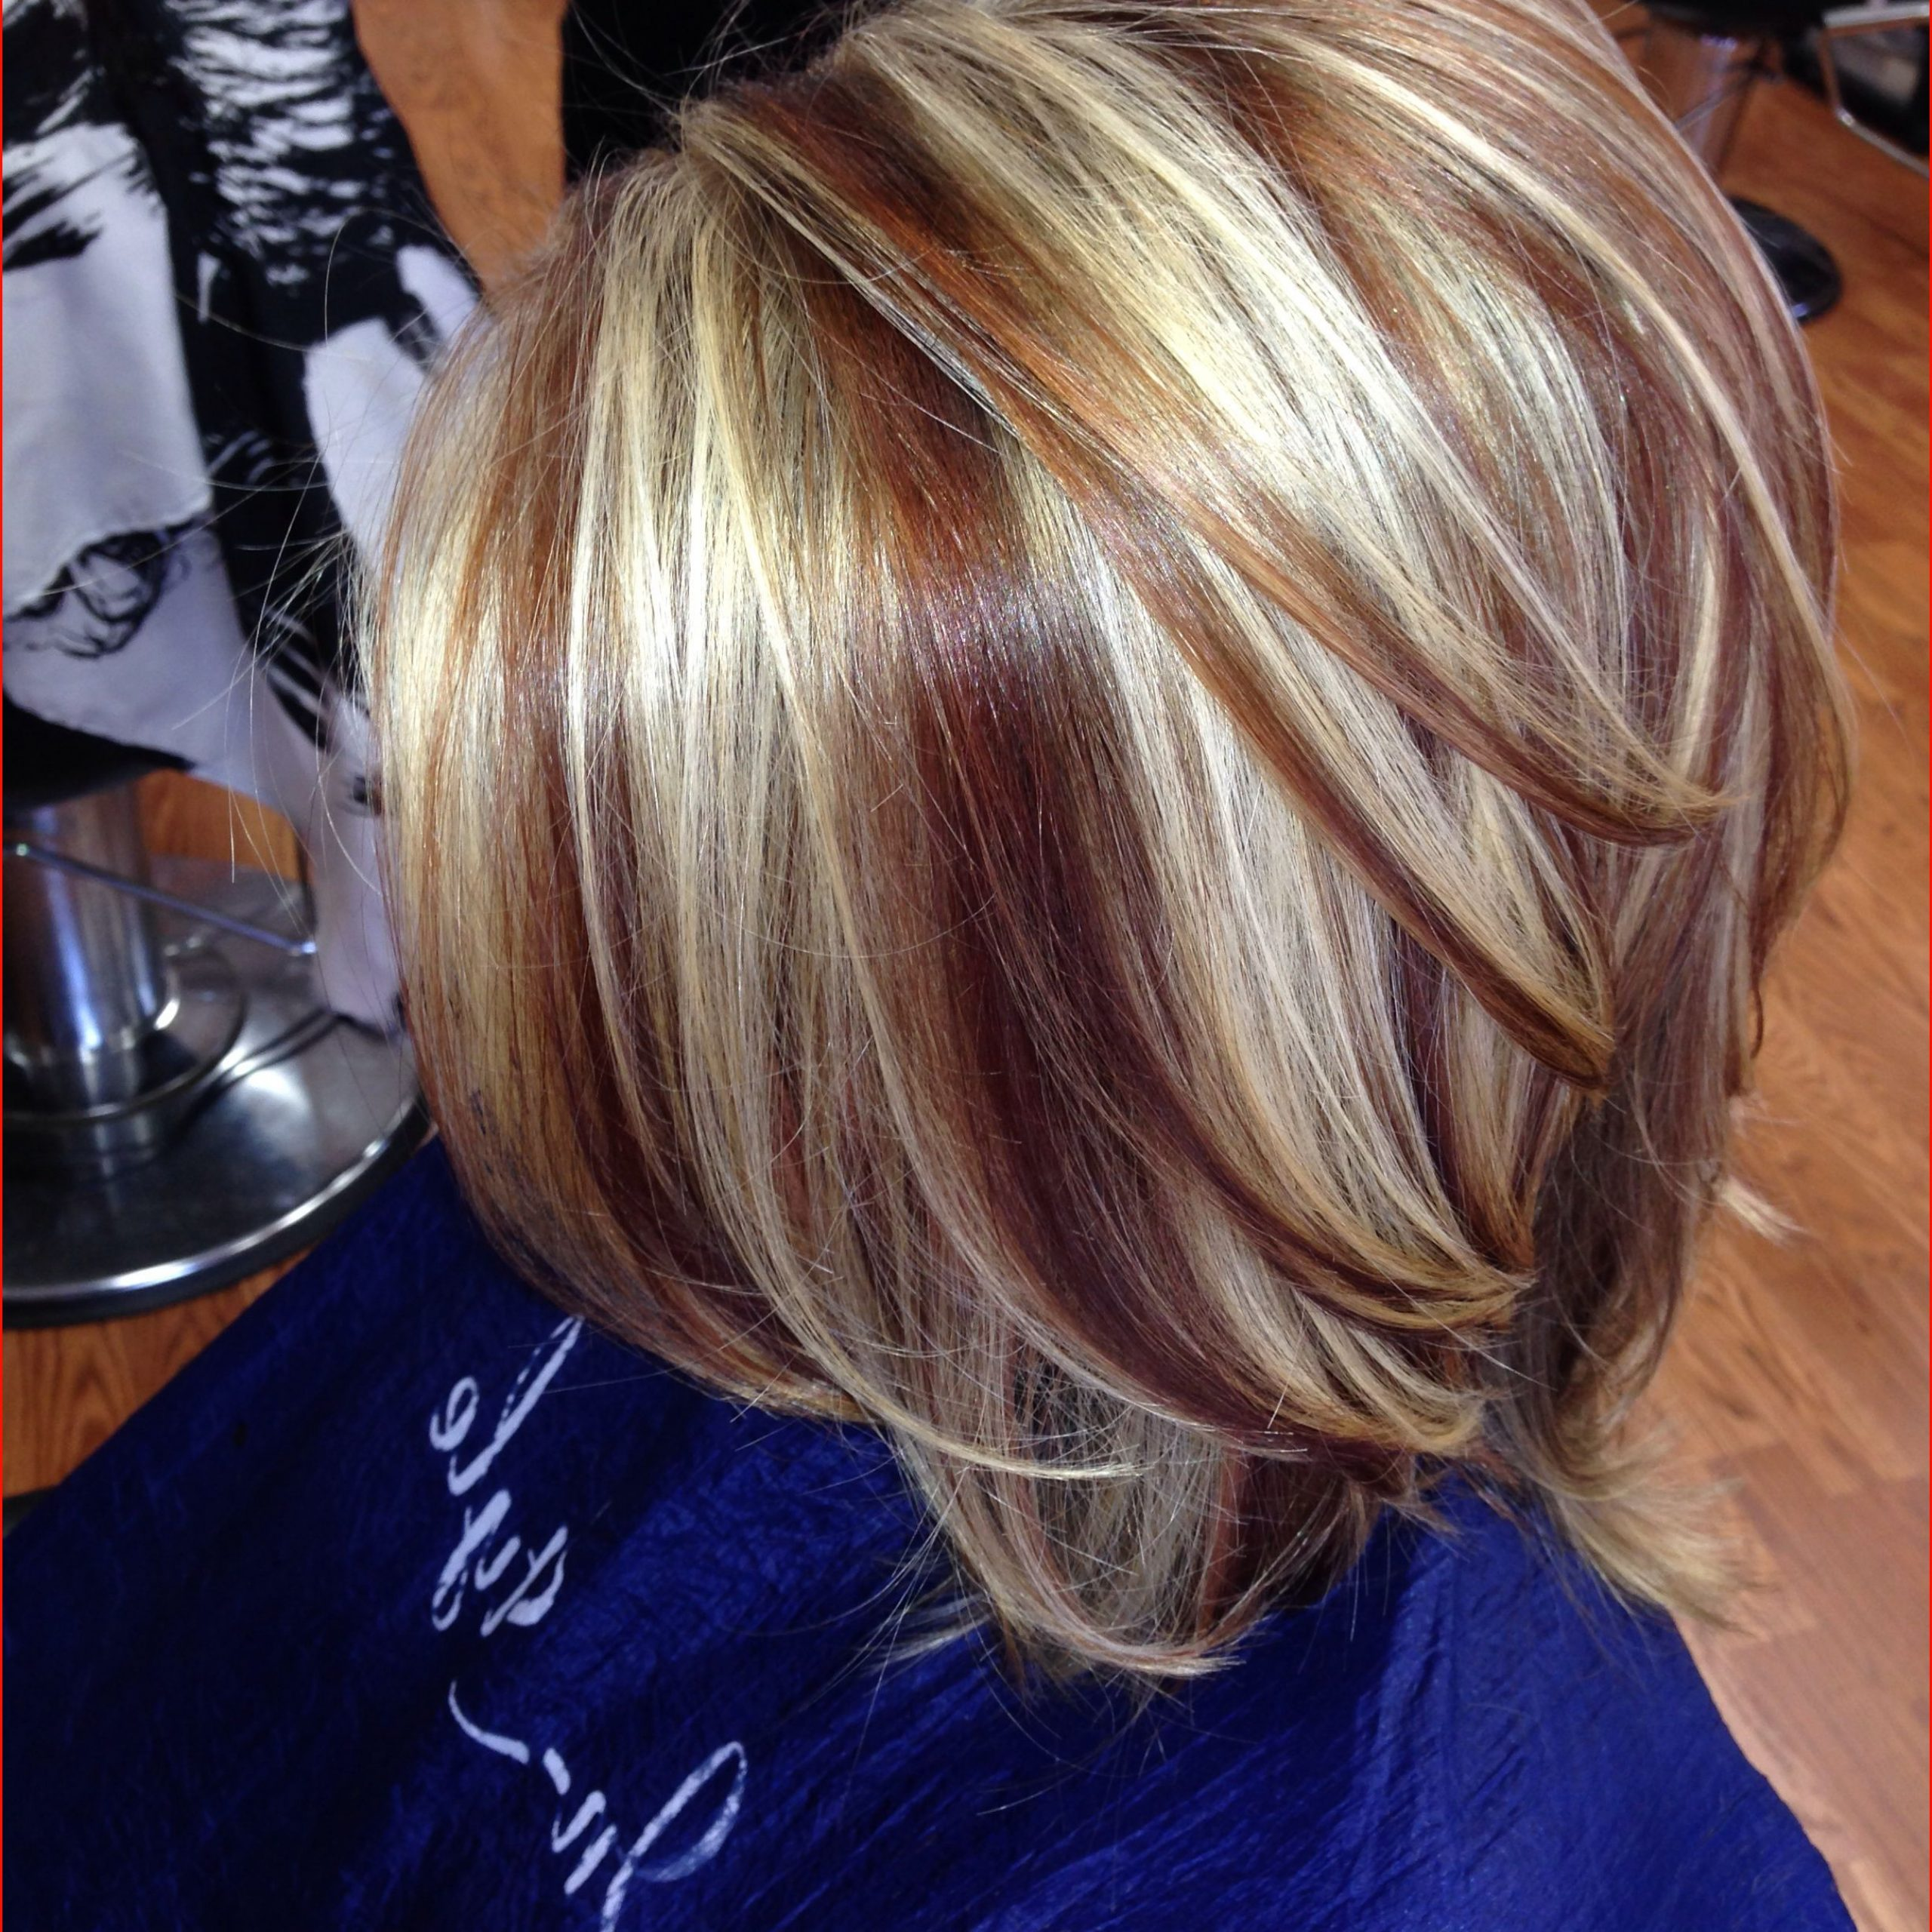 Best Fall Hair Colors Short Hair Picture Of Hair Color Inside Well Known Lovely Two Tone Choppy Lob Hairstyles (View 6 of 20)